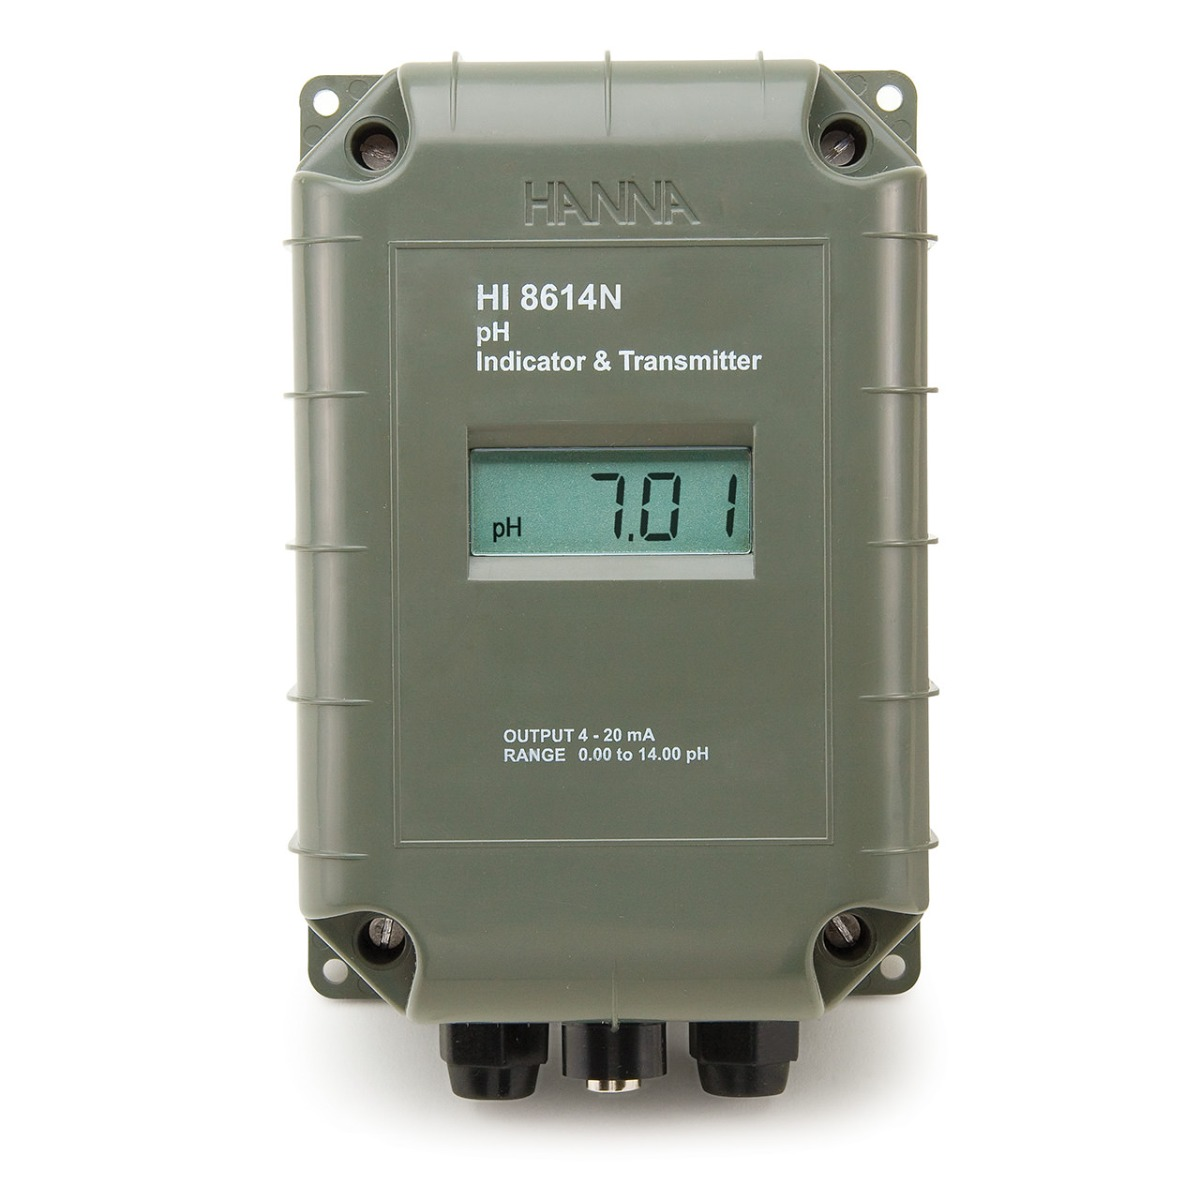 pH Transmitter with 4-20 mA Galvanically Isolated Output - HI8614